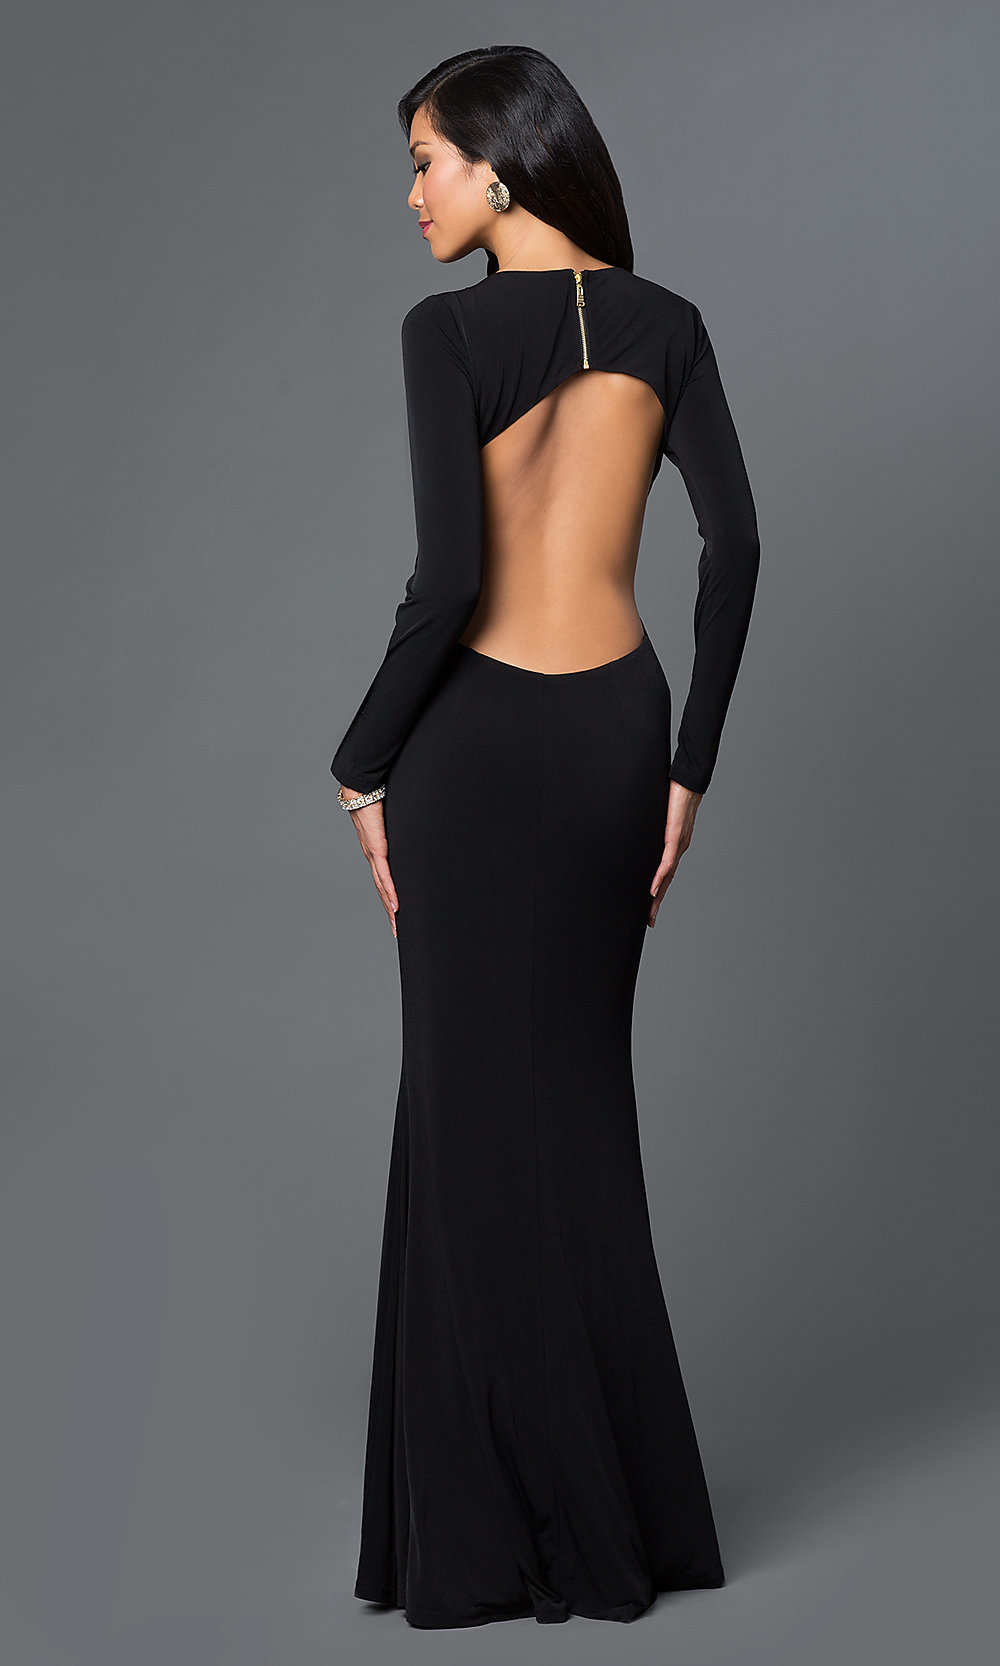 Cut out prom dress long